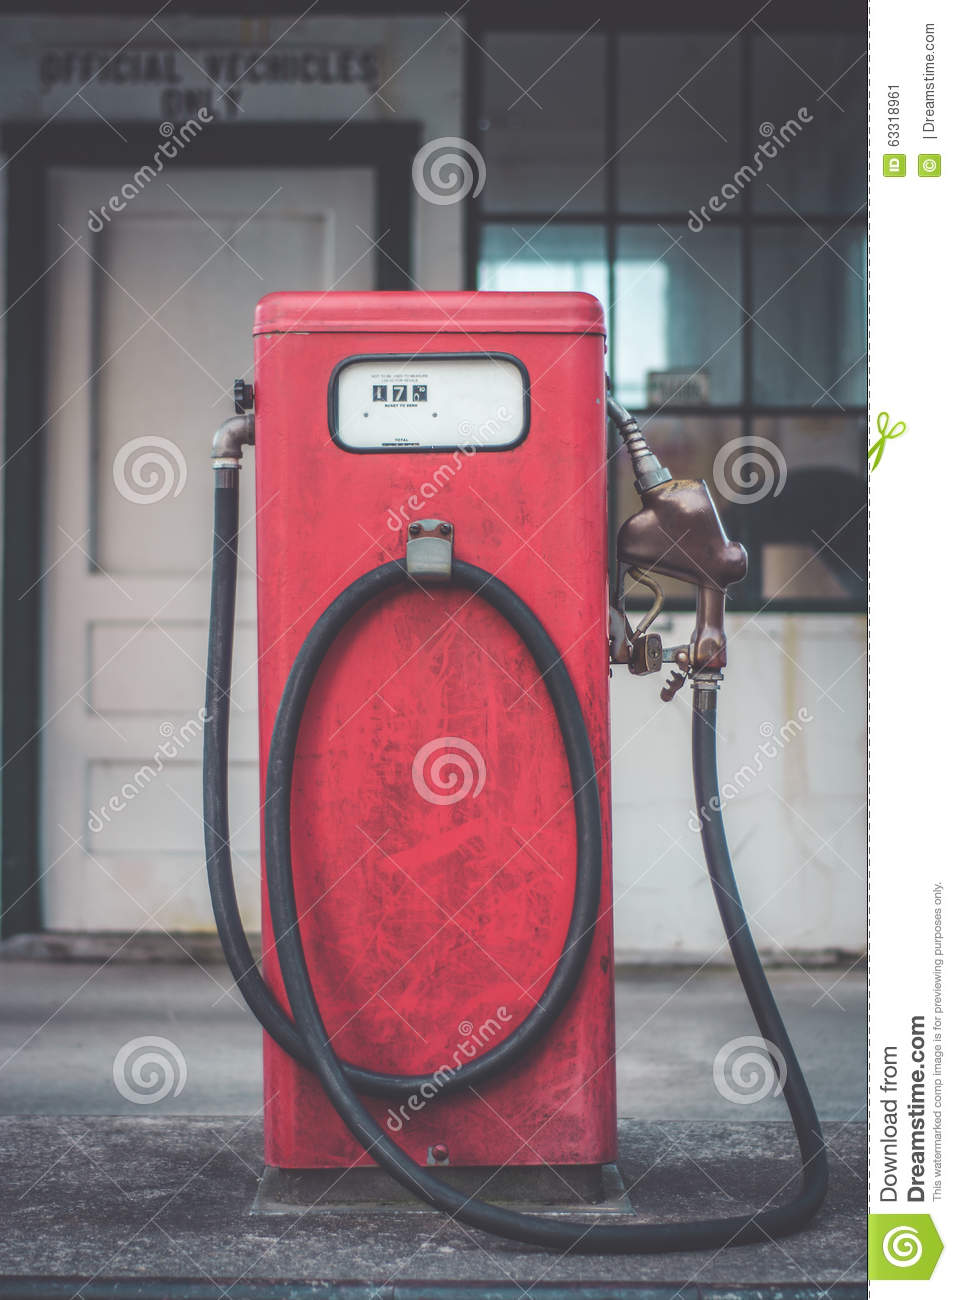 Classic Vintage Red Fuel Pumps. Stock Image - Image of nobody 72b9896ea9326